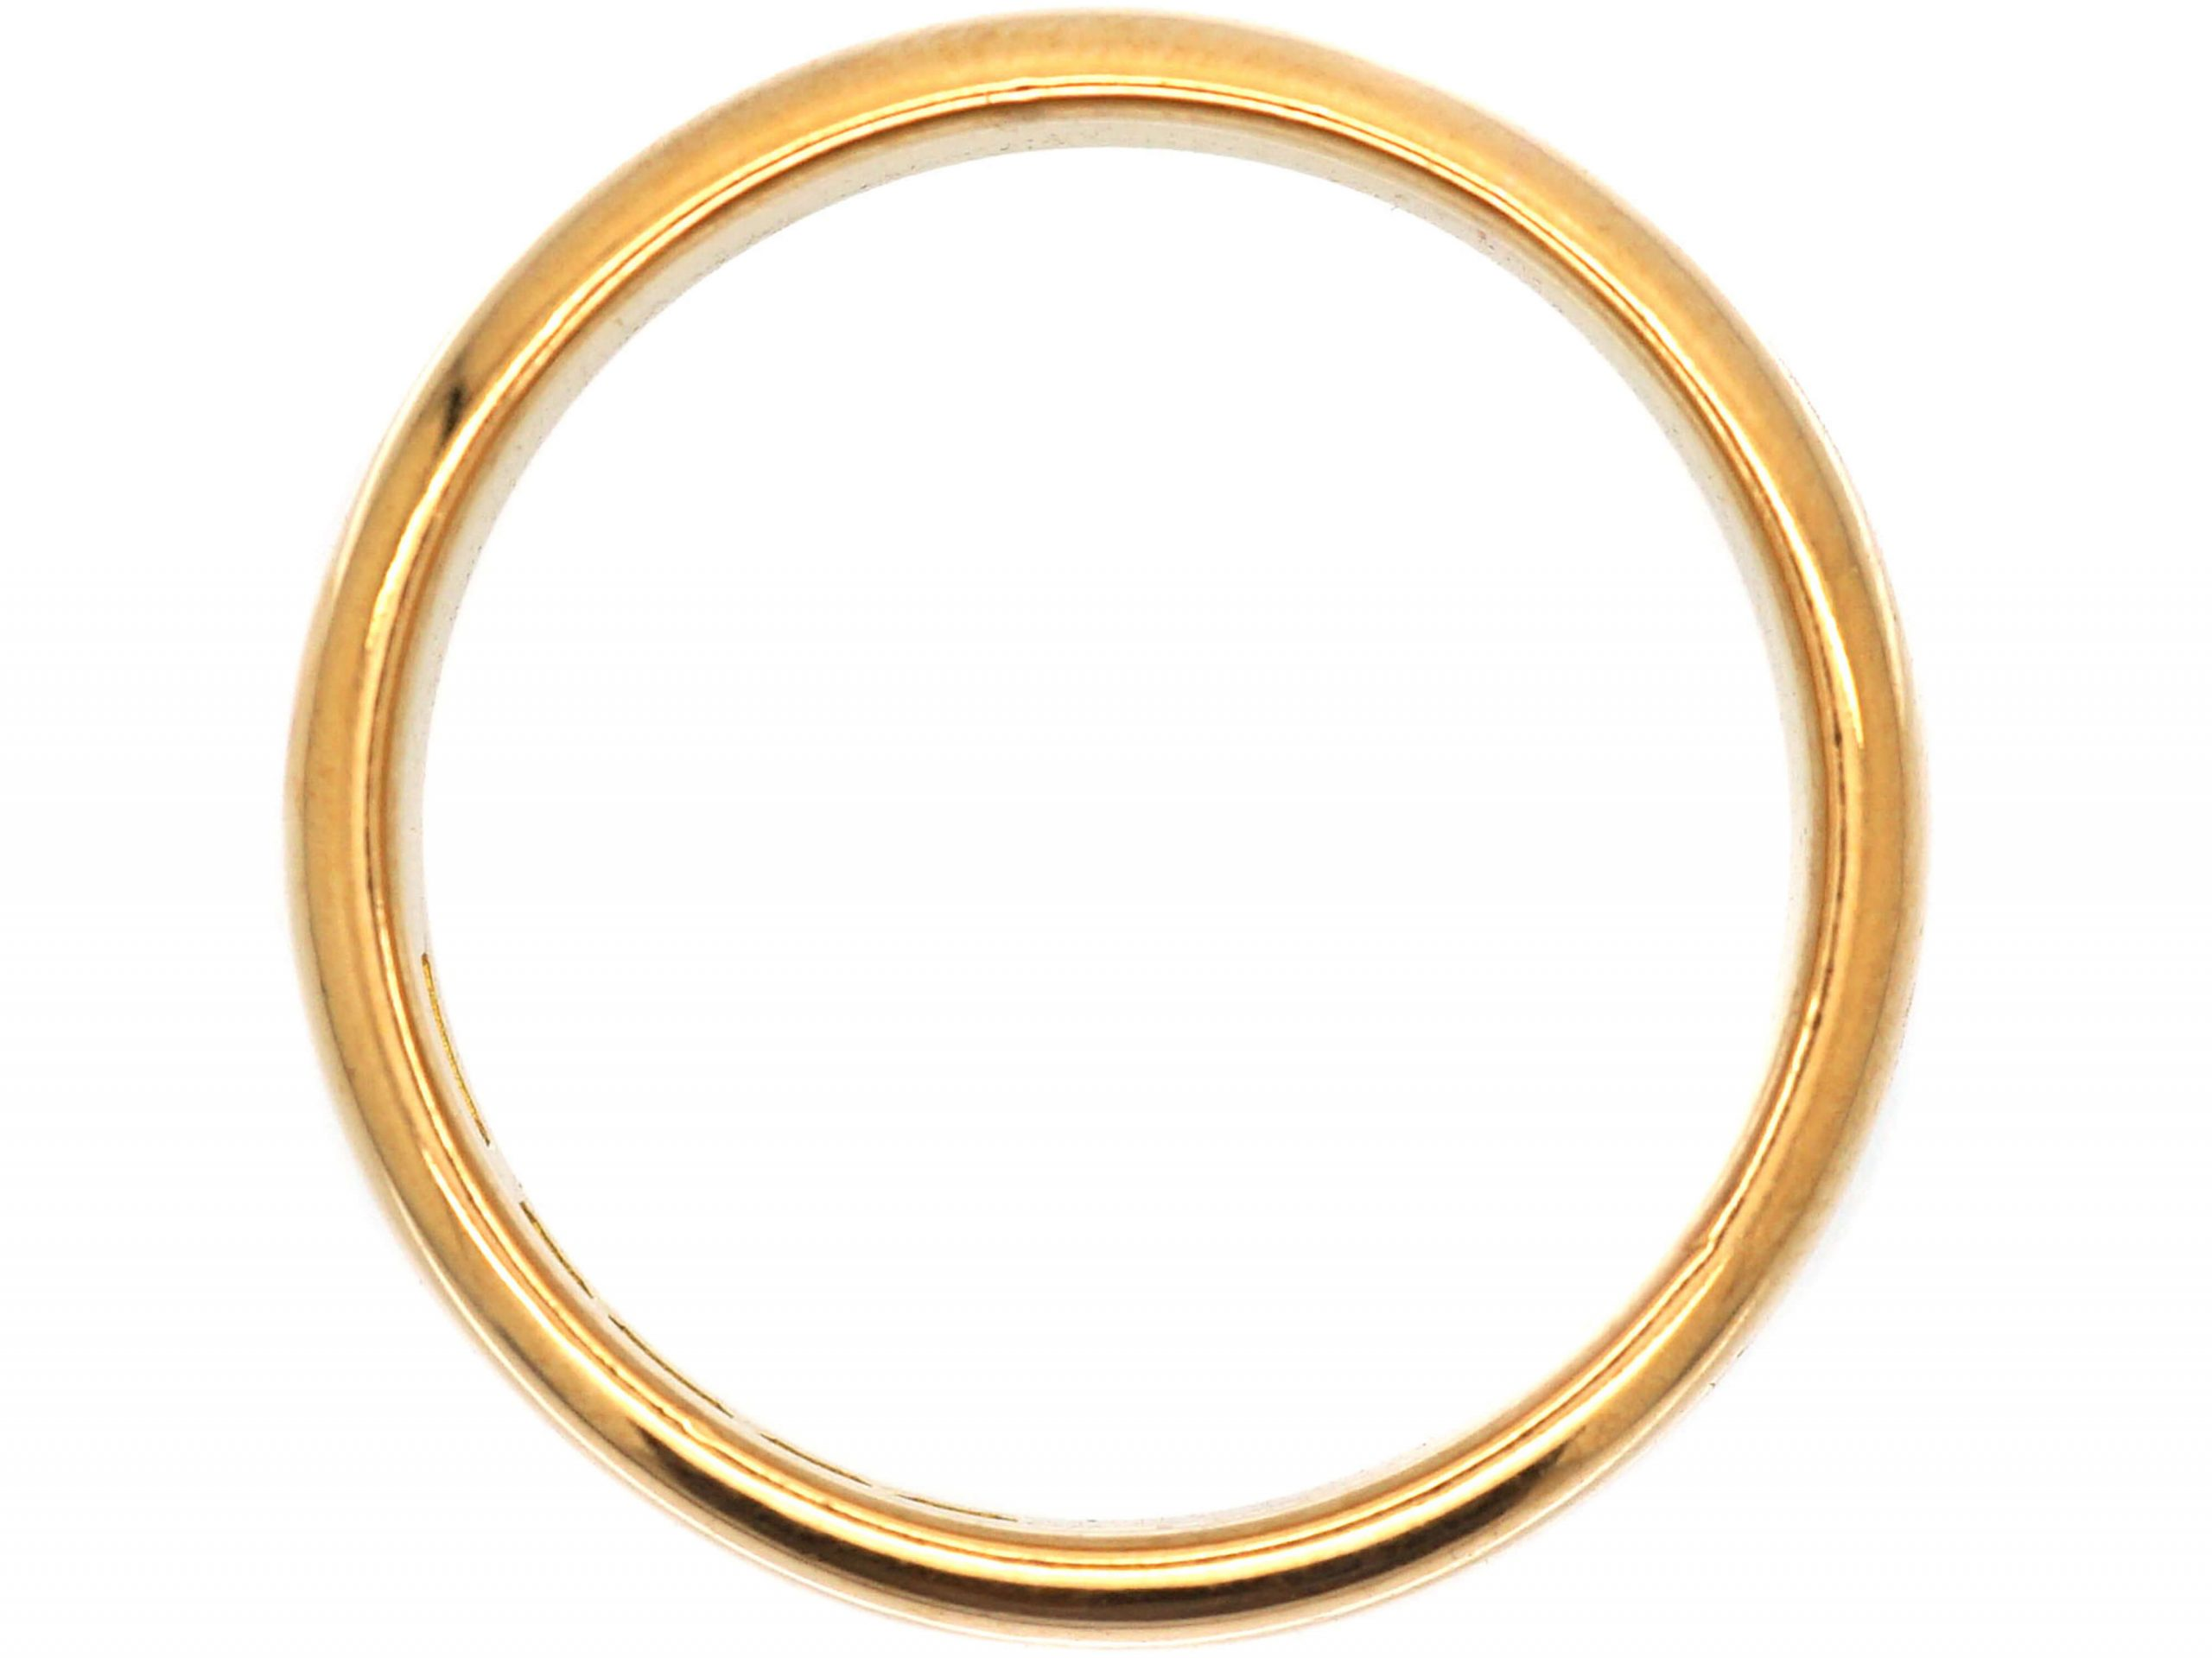 22ct Gold Wide Wedding Ring Assayed in 1925